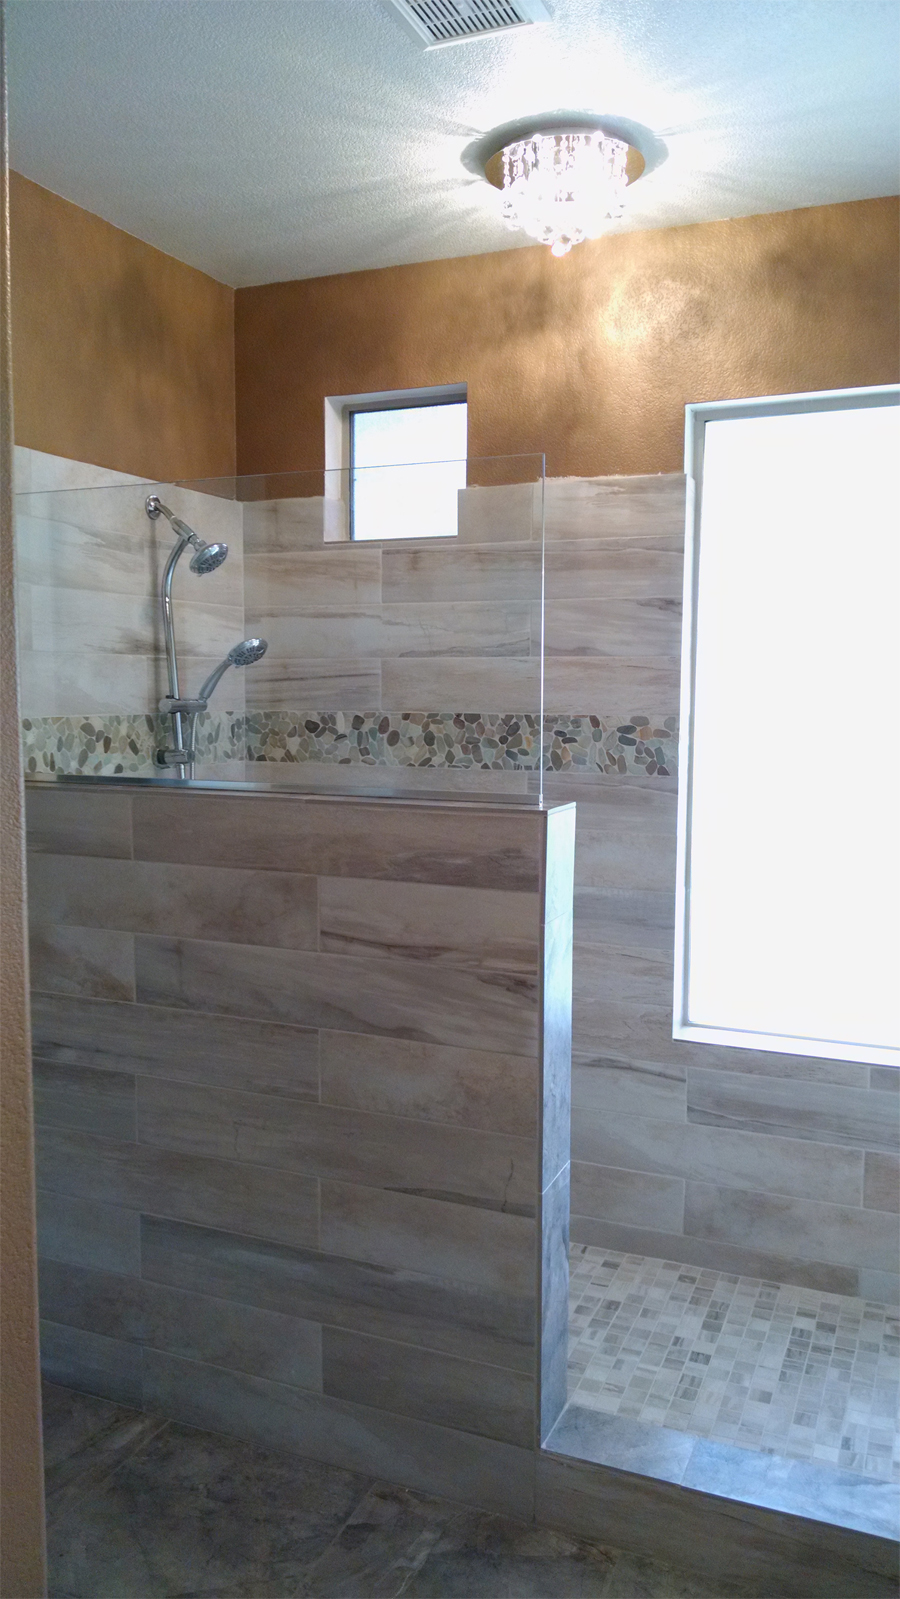 Bathroom Remodel Phoenix Bathroom Remodel Cave Creek Az  Champion Remodeling Llc.